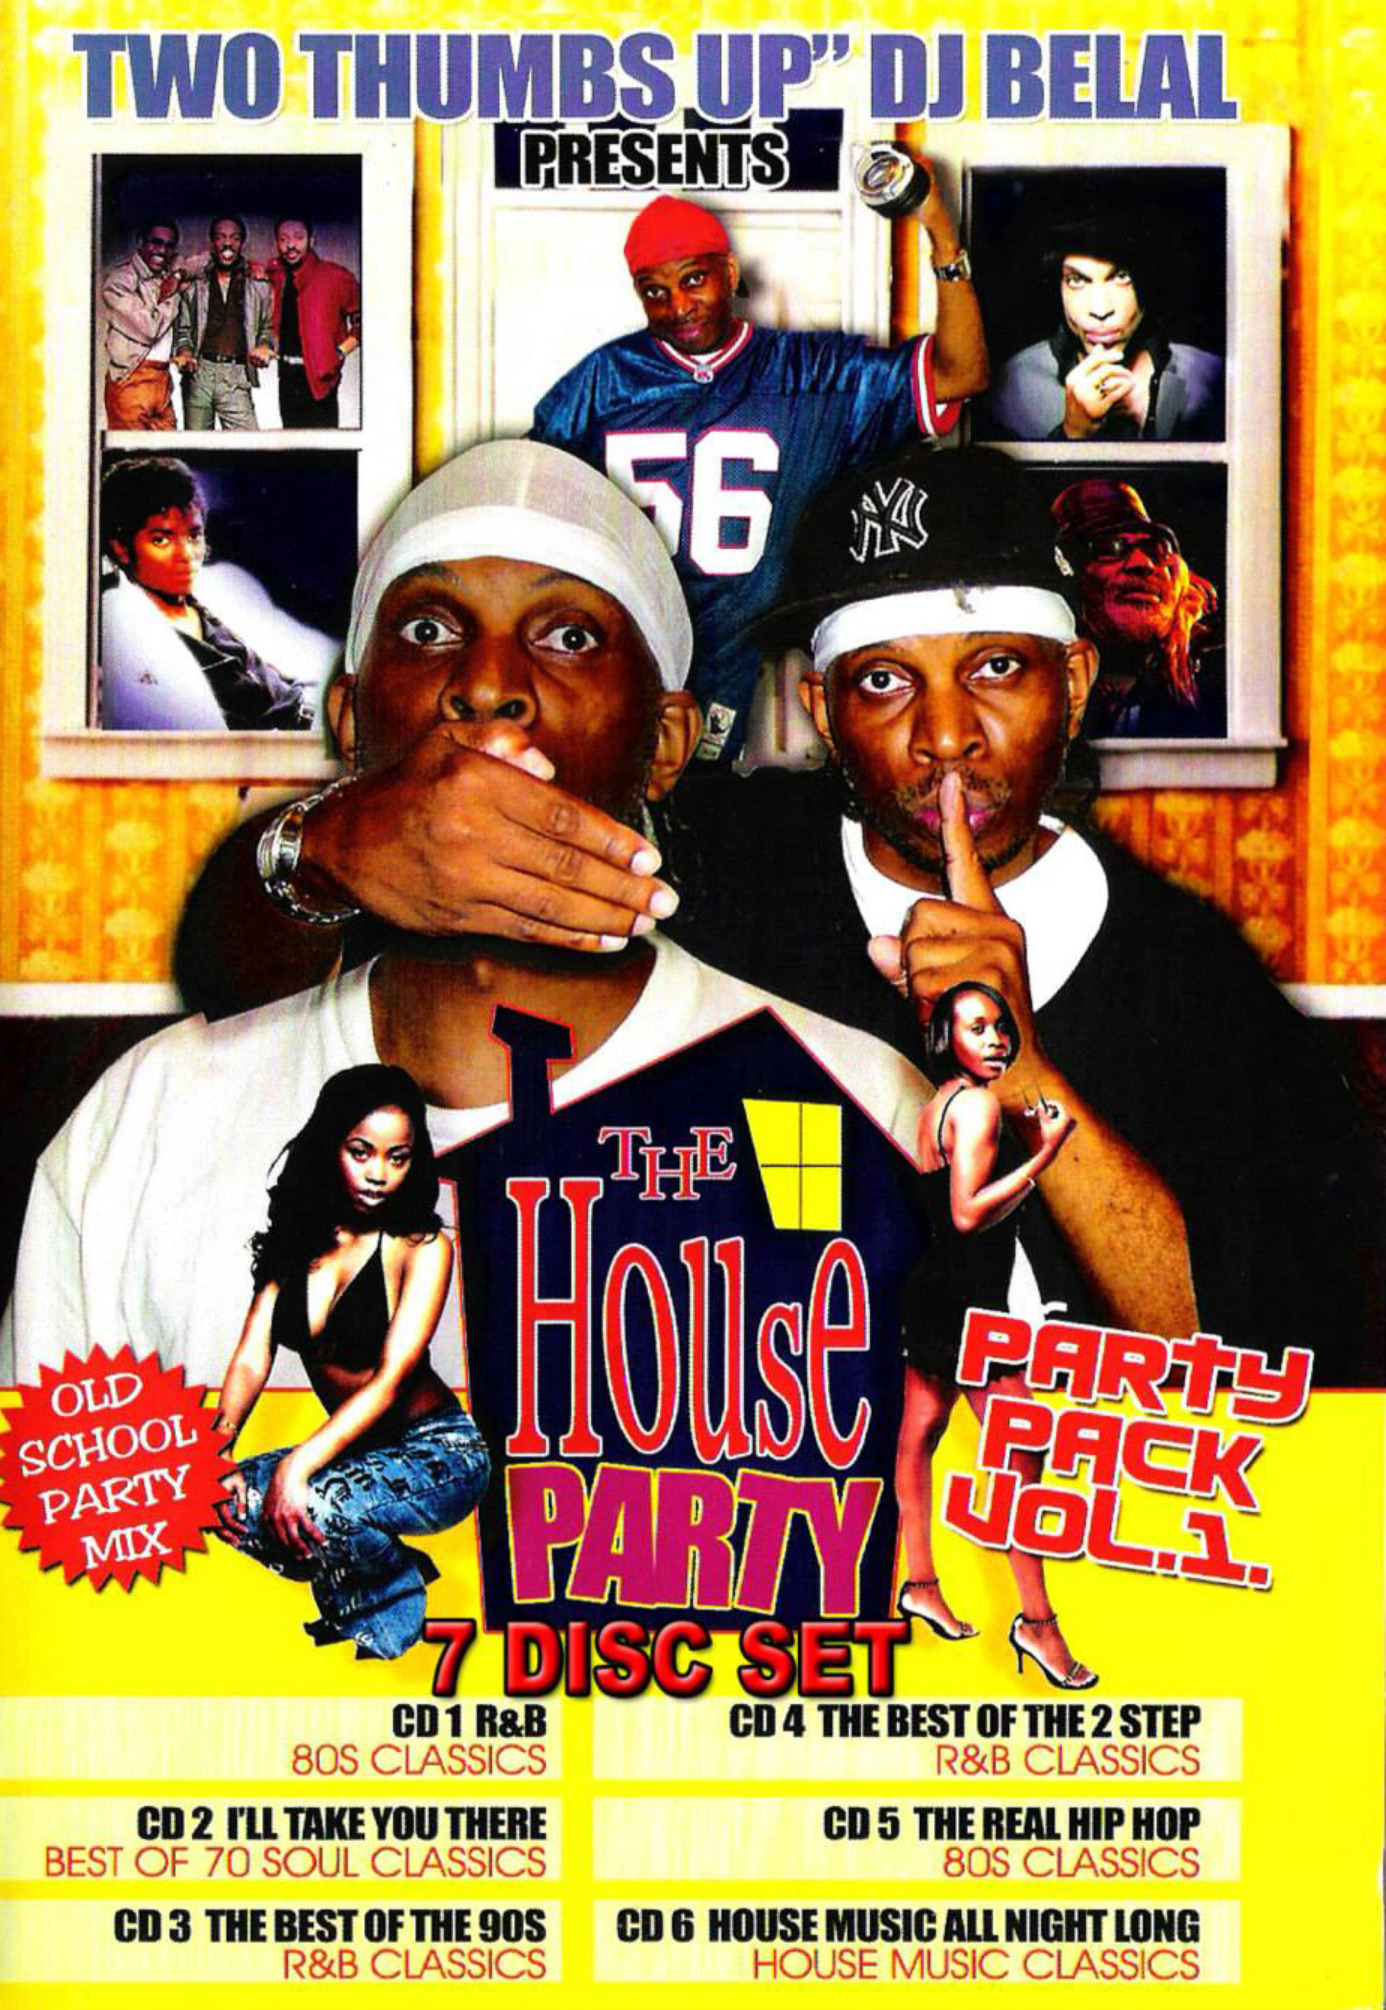 Old School House Party Mix 4 MP3 - The Legendary DJ Belal